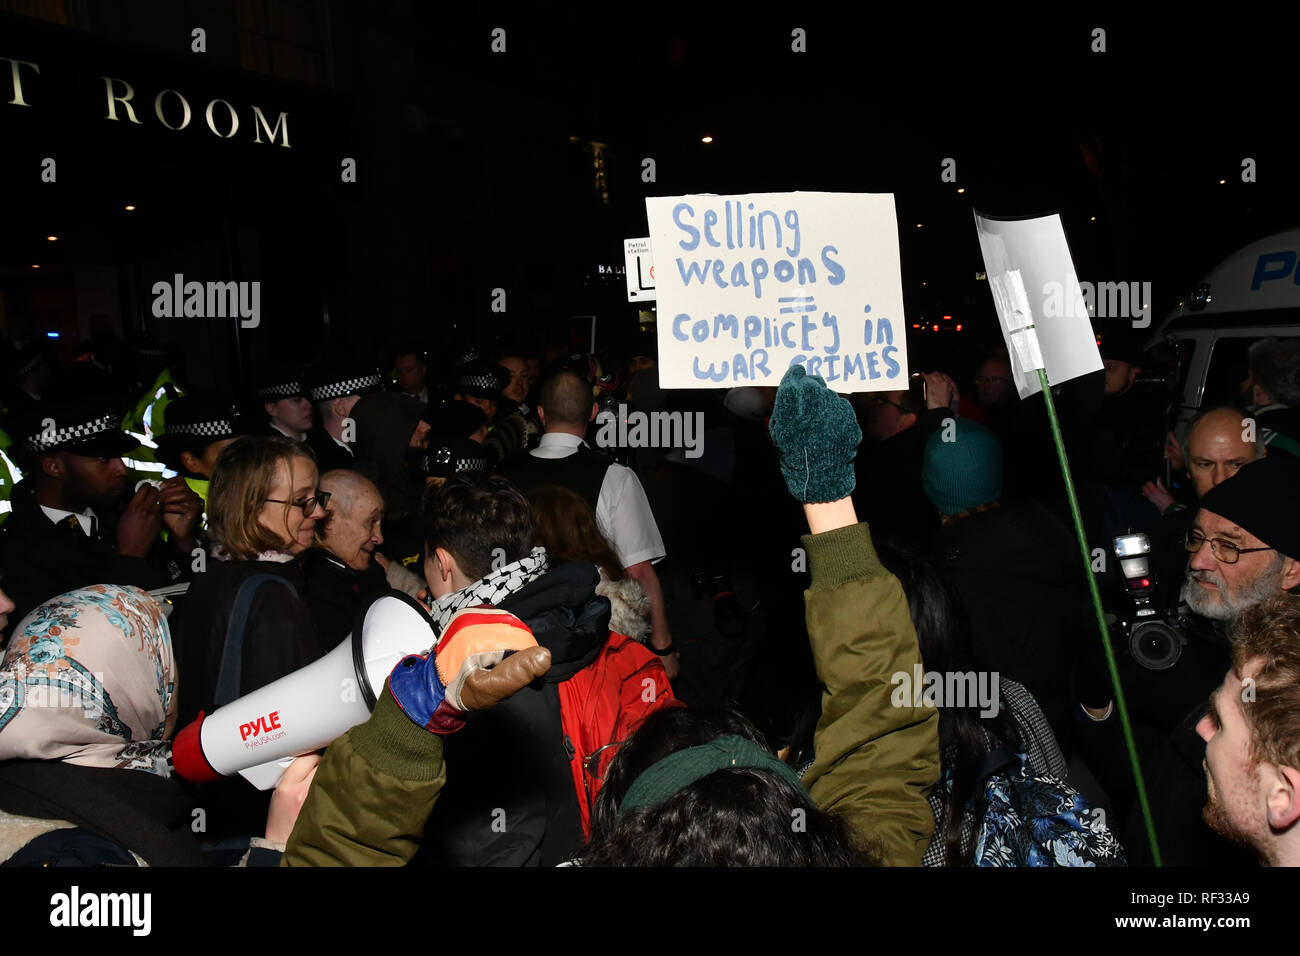 London, UK. 23rd January, 2019. Campaign Against Arms Trade protests against Arms dealers feast while Yemen is starved banking in on the suffering and daying and dead of Yemenis children and babies. Sitin at the Grosvenor House Hotel on 23 Feb 2019, London, UK. Credit: Picture Capital/Alamy Live News Stock Photo